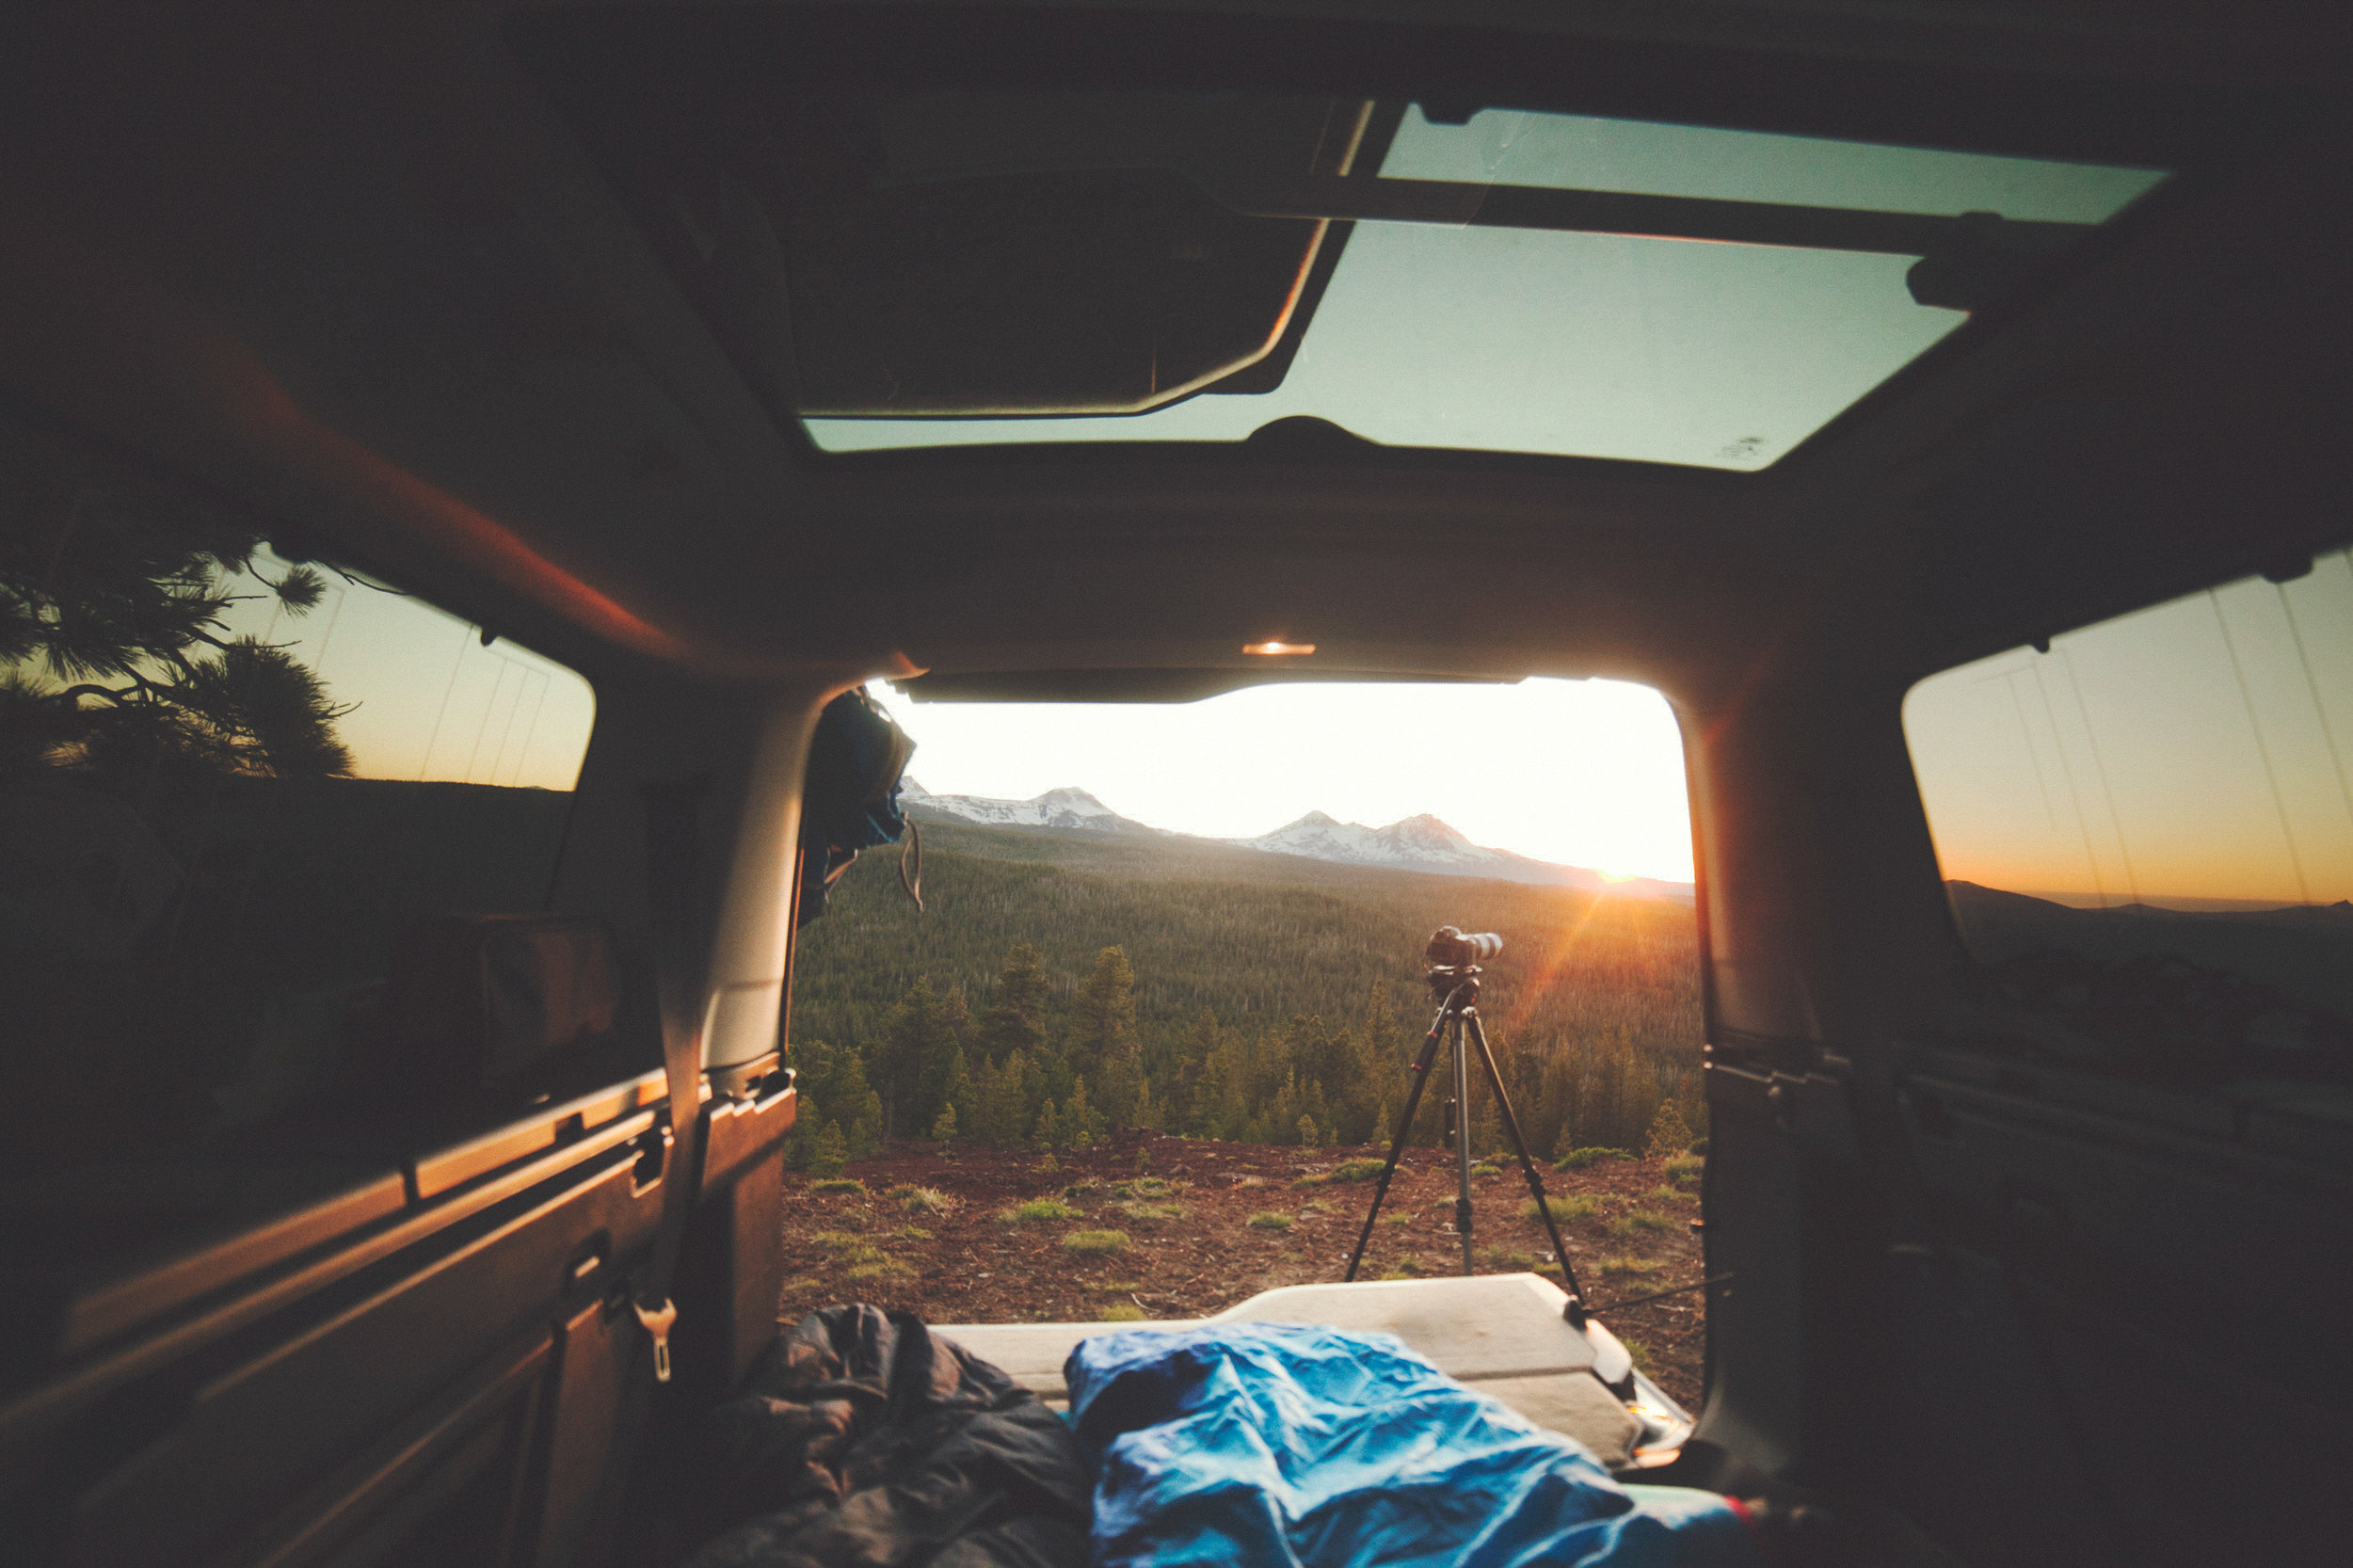 046Travel_Adventure_Photography_Outlive_Creative_Oregon_Bend_Camping.jpg